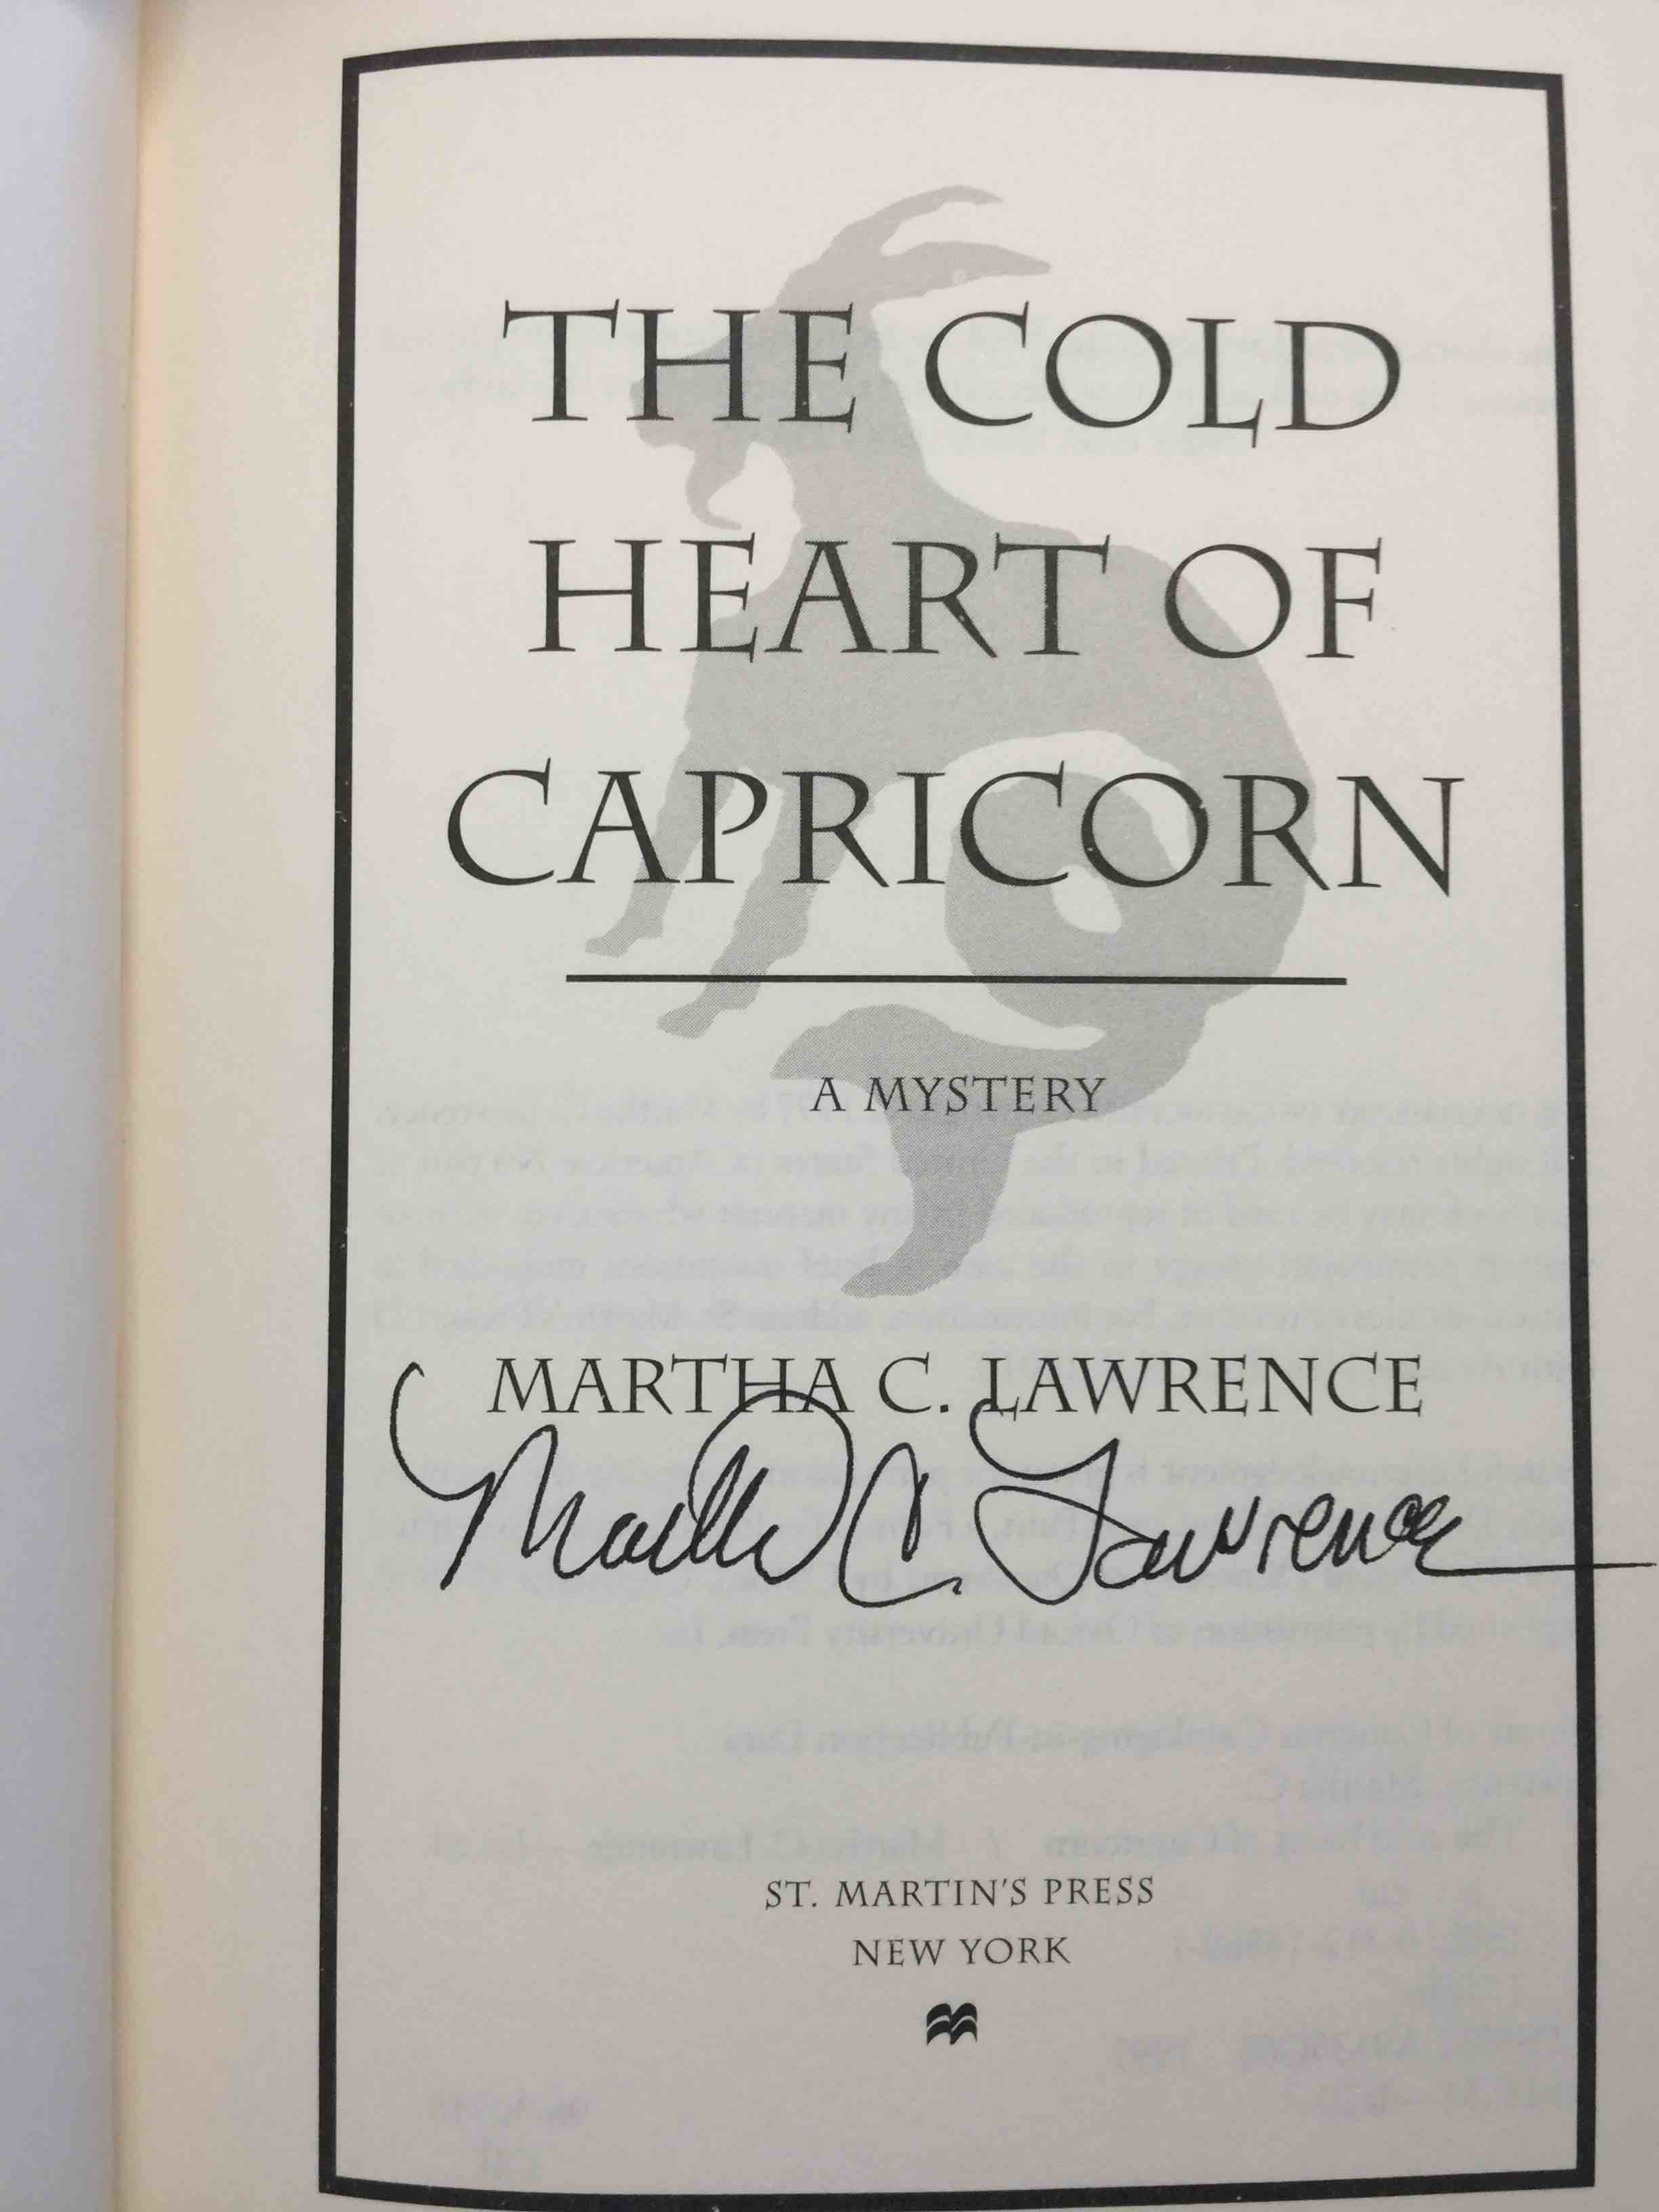 LAWRENCE, MARTHA. - THE COLD HEART OF CAPRICORN.